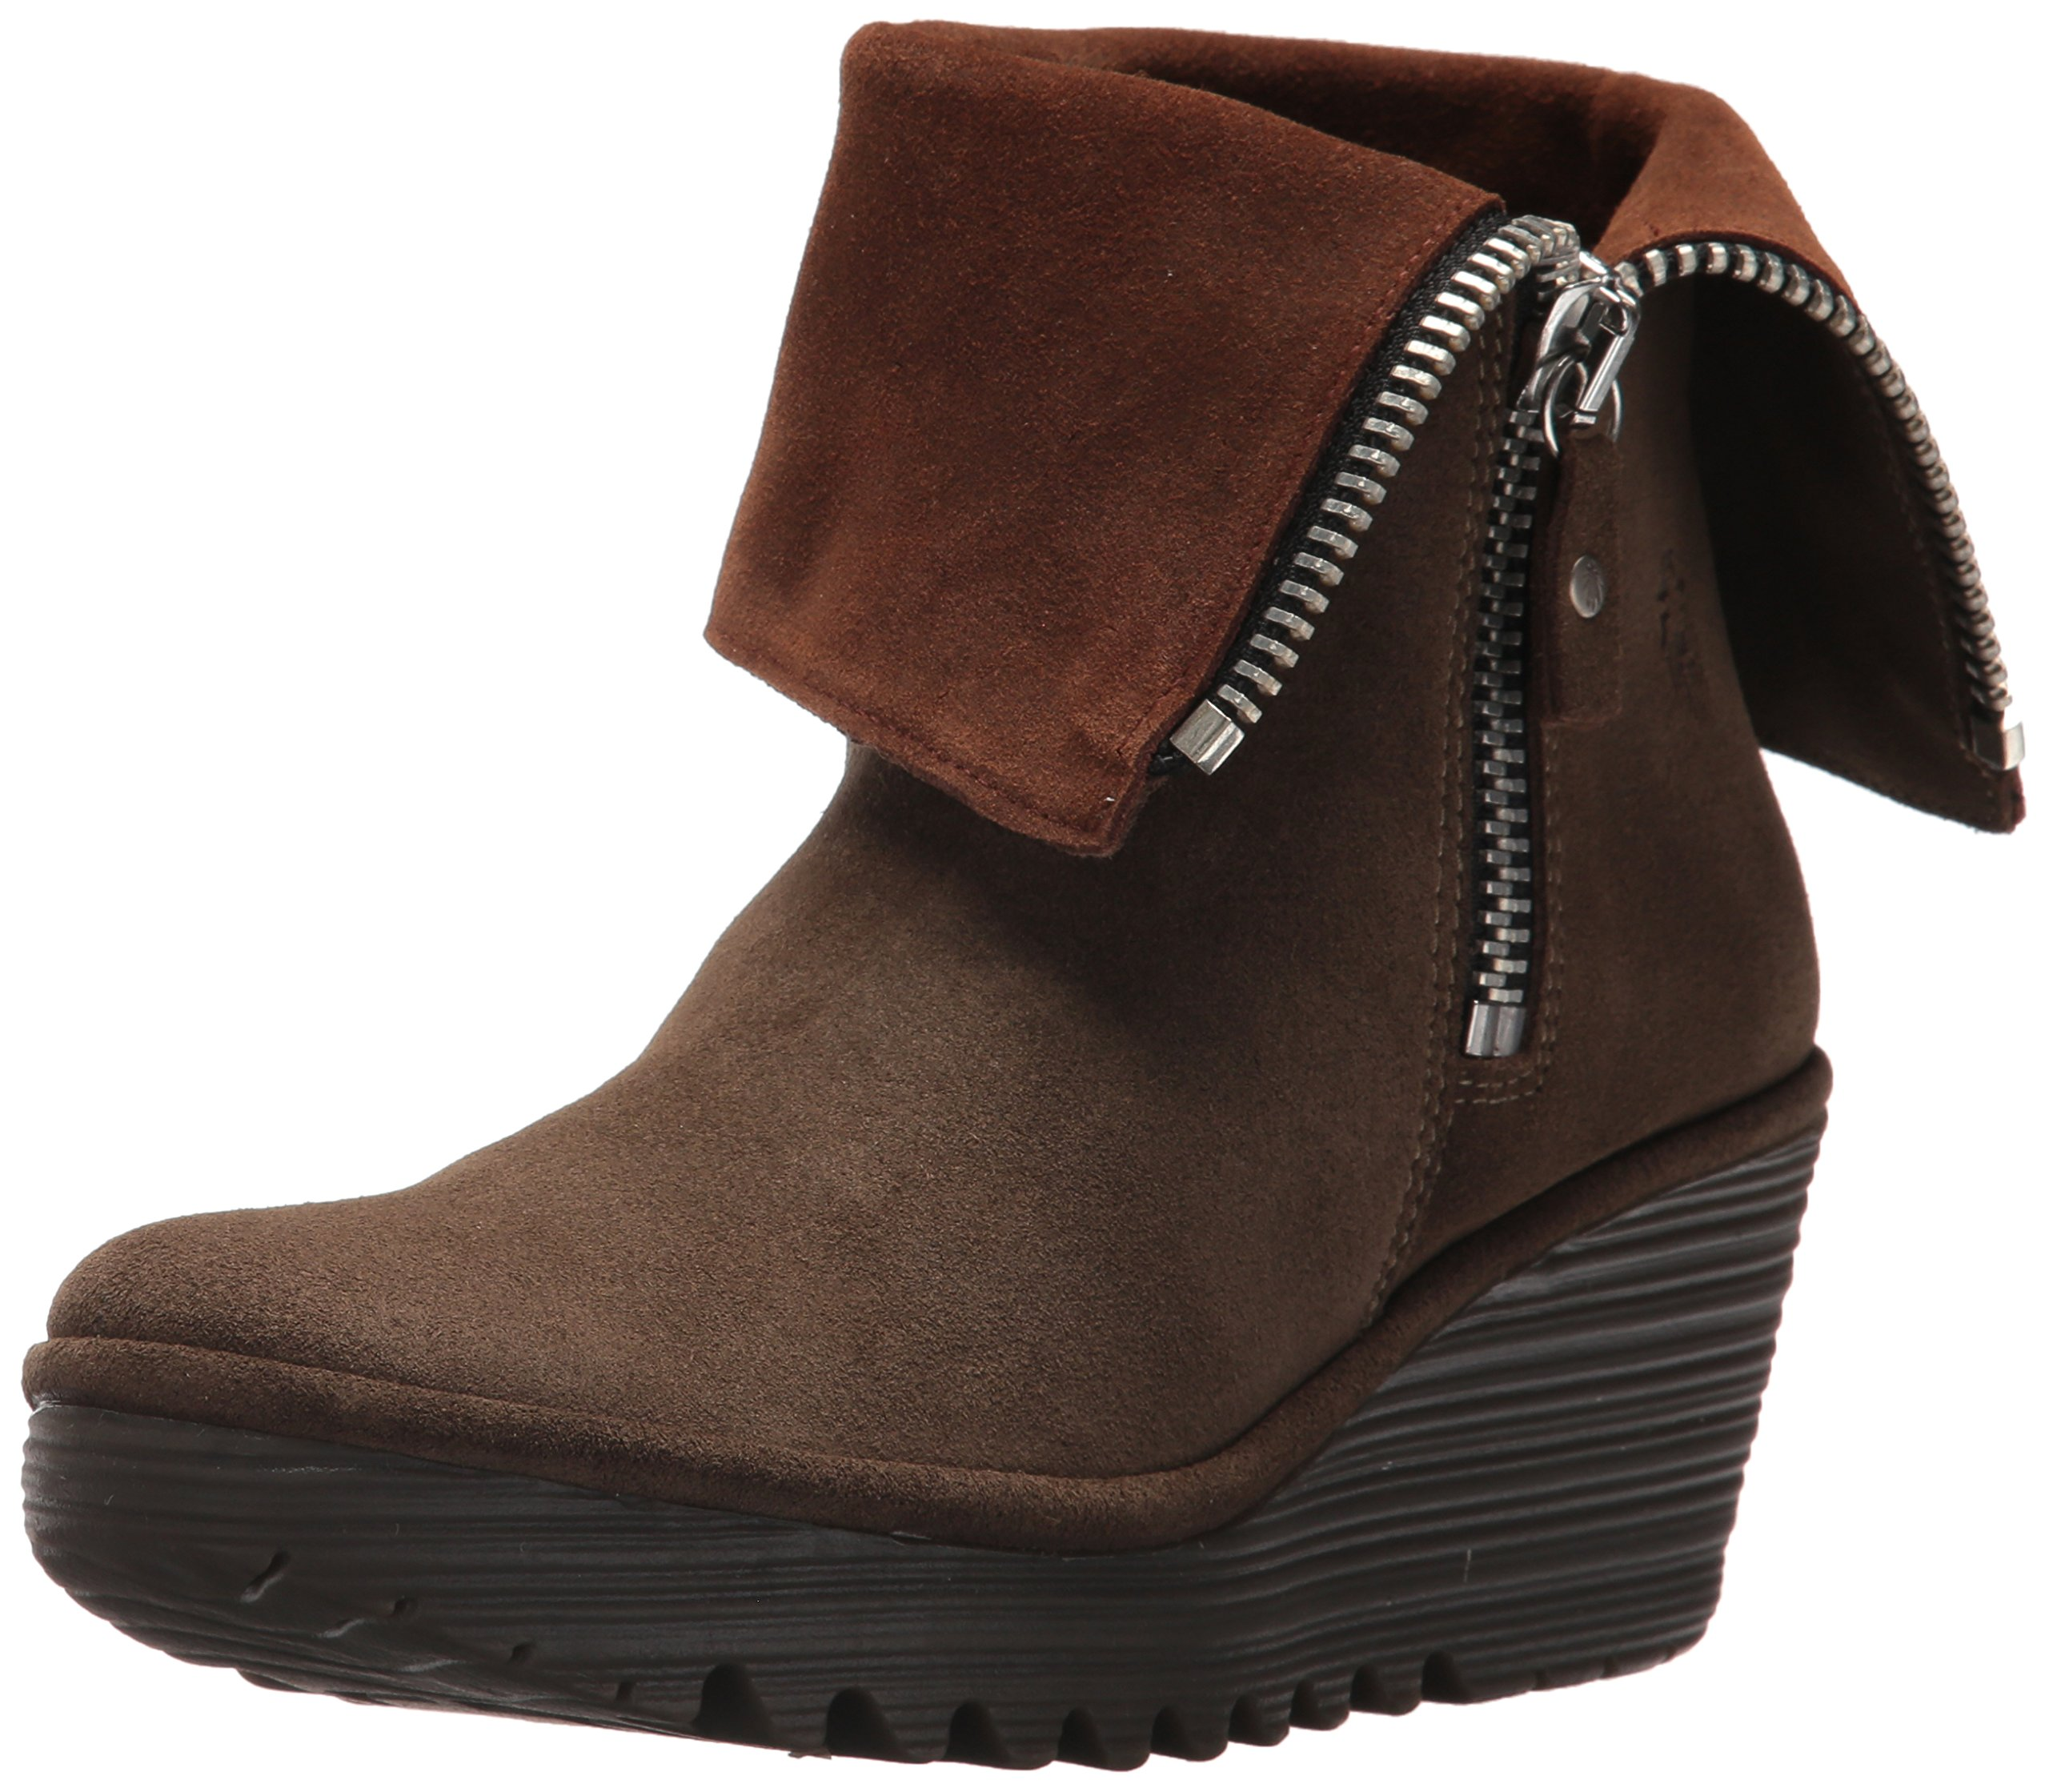 FLY London Women's Yex668fly Mid Calf Boot, Sludge/Camel Oil Suede, 41 M EU (10 US) by FLY London (Image #1)